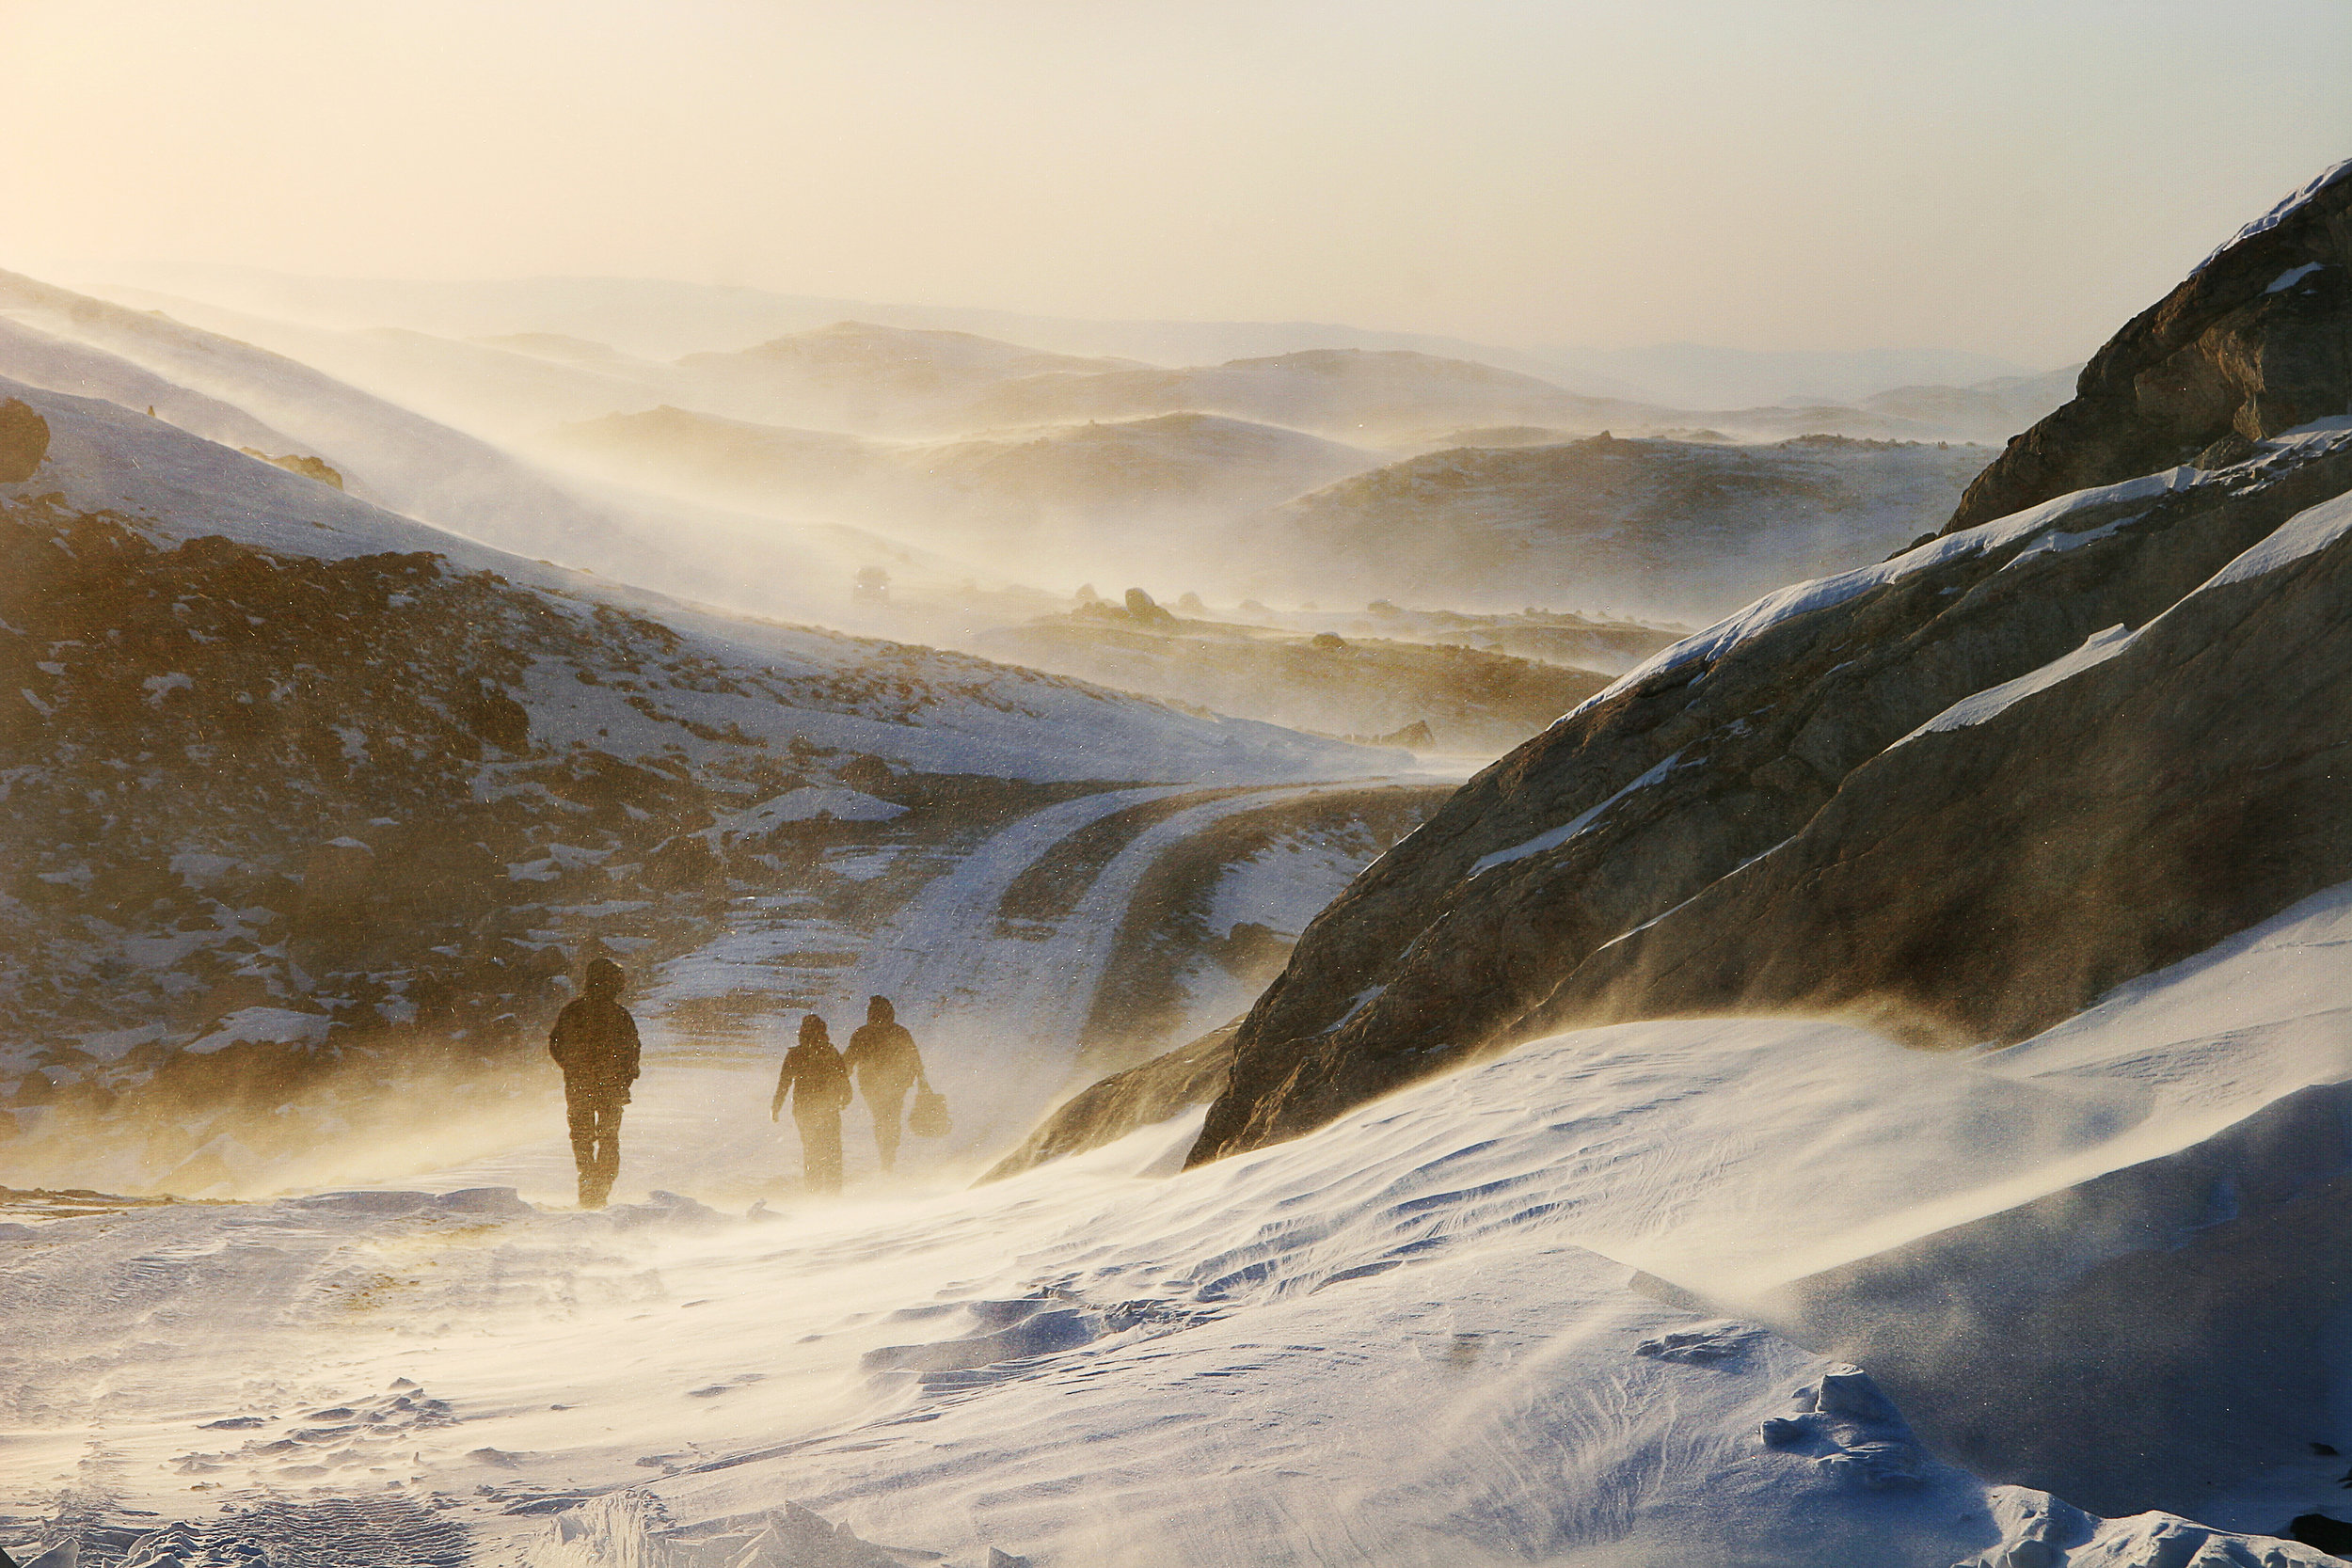 Winds pick up over the frozen tundra of the Russell Glacier near Kangerlussuaq, Greenland | November 4, 2009.